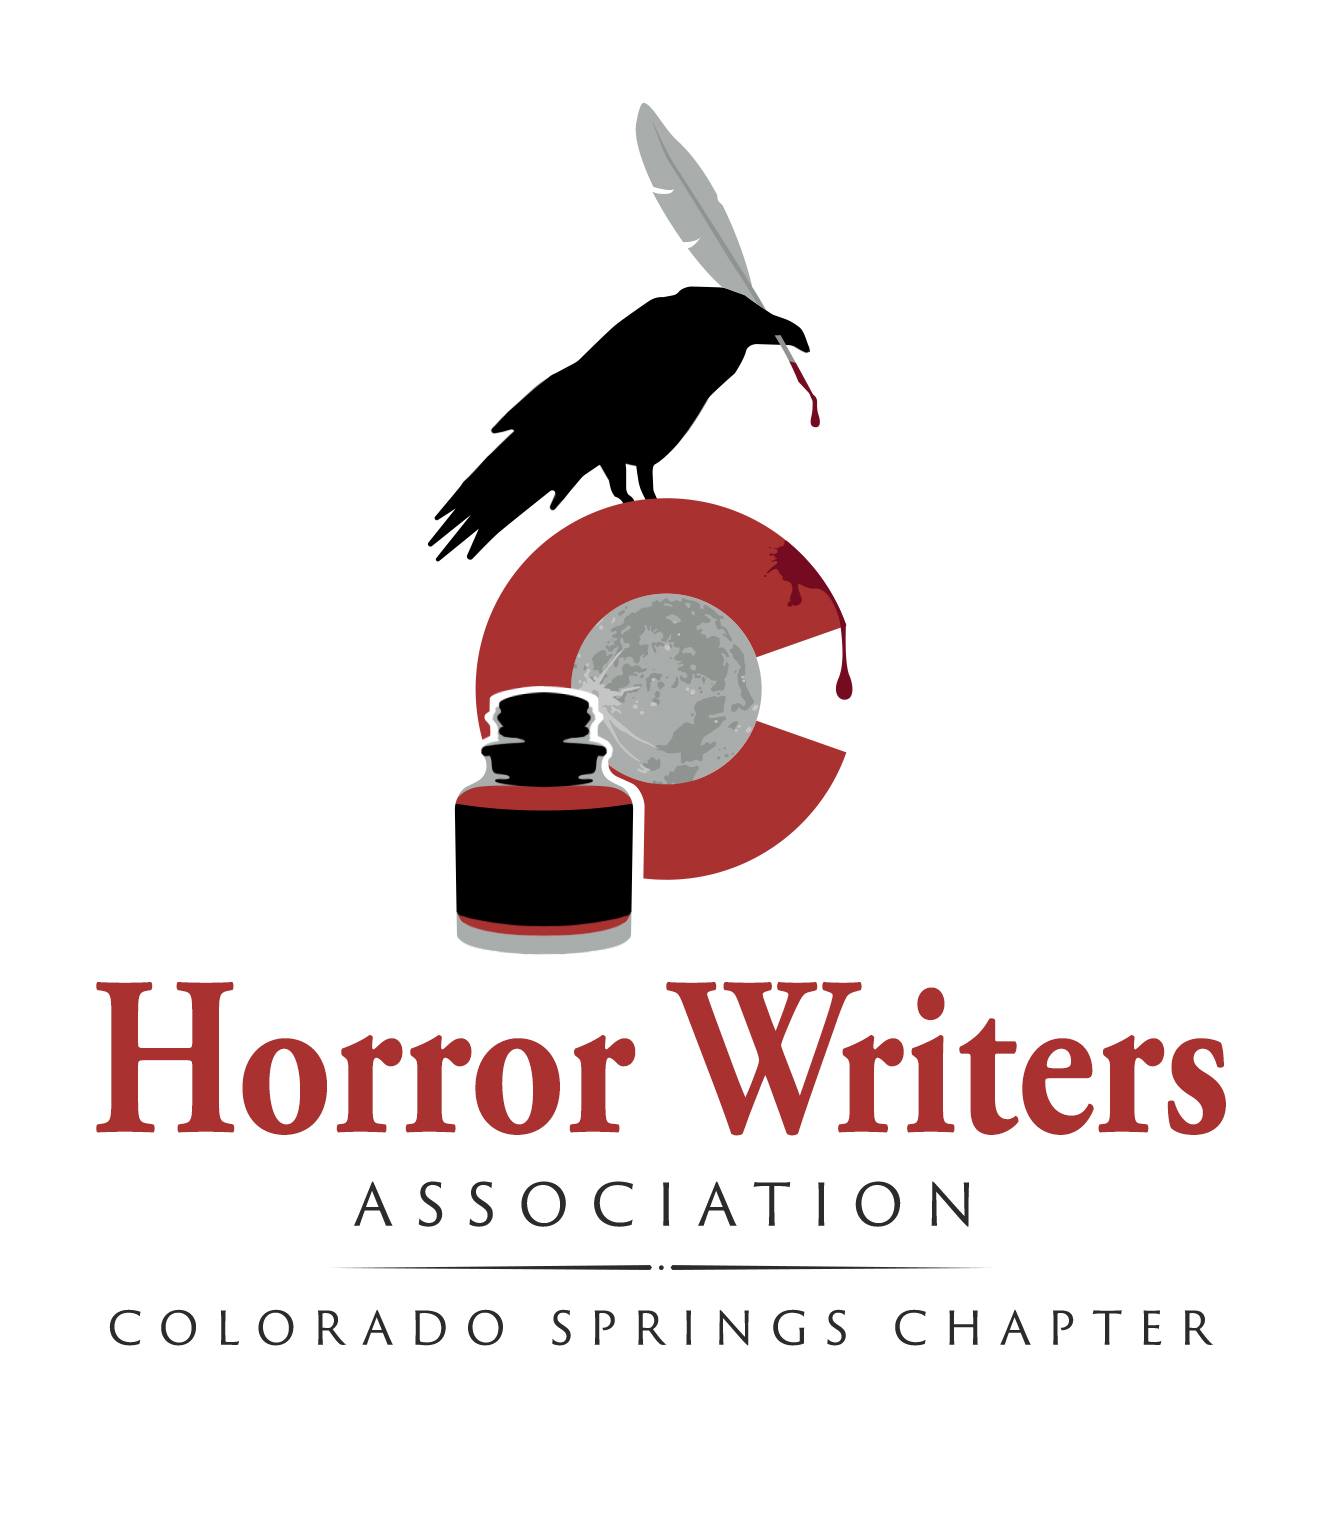 Horror Writers Association COS